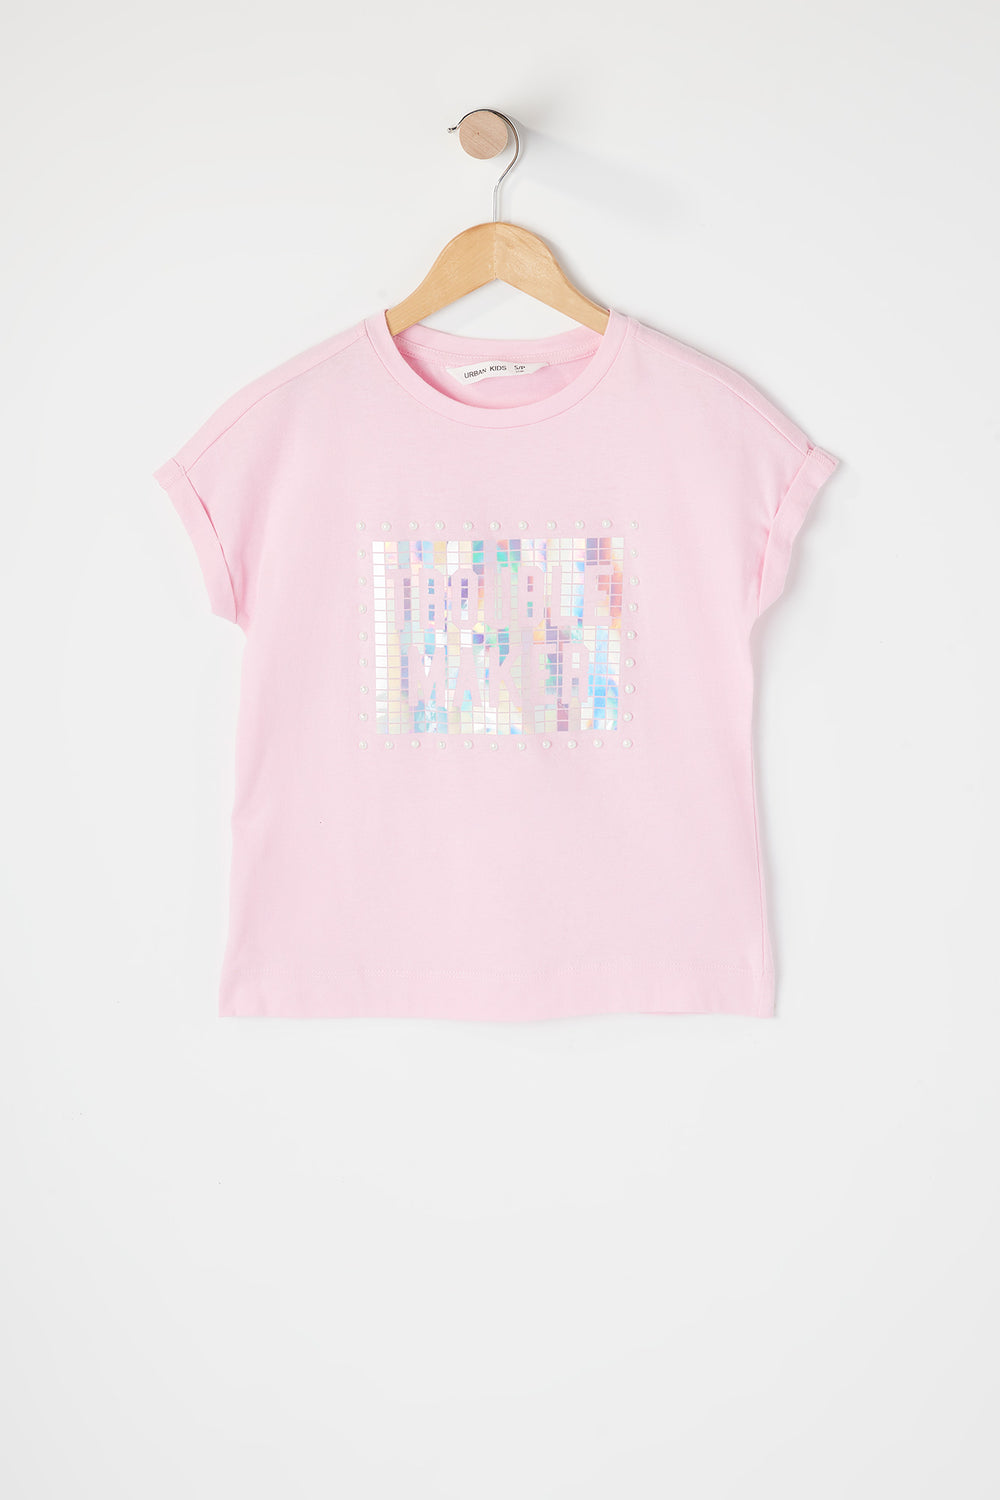 Girls Graphic Pearl T-Shirt Pink